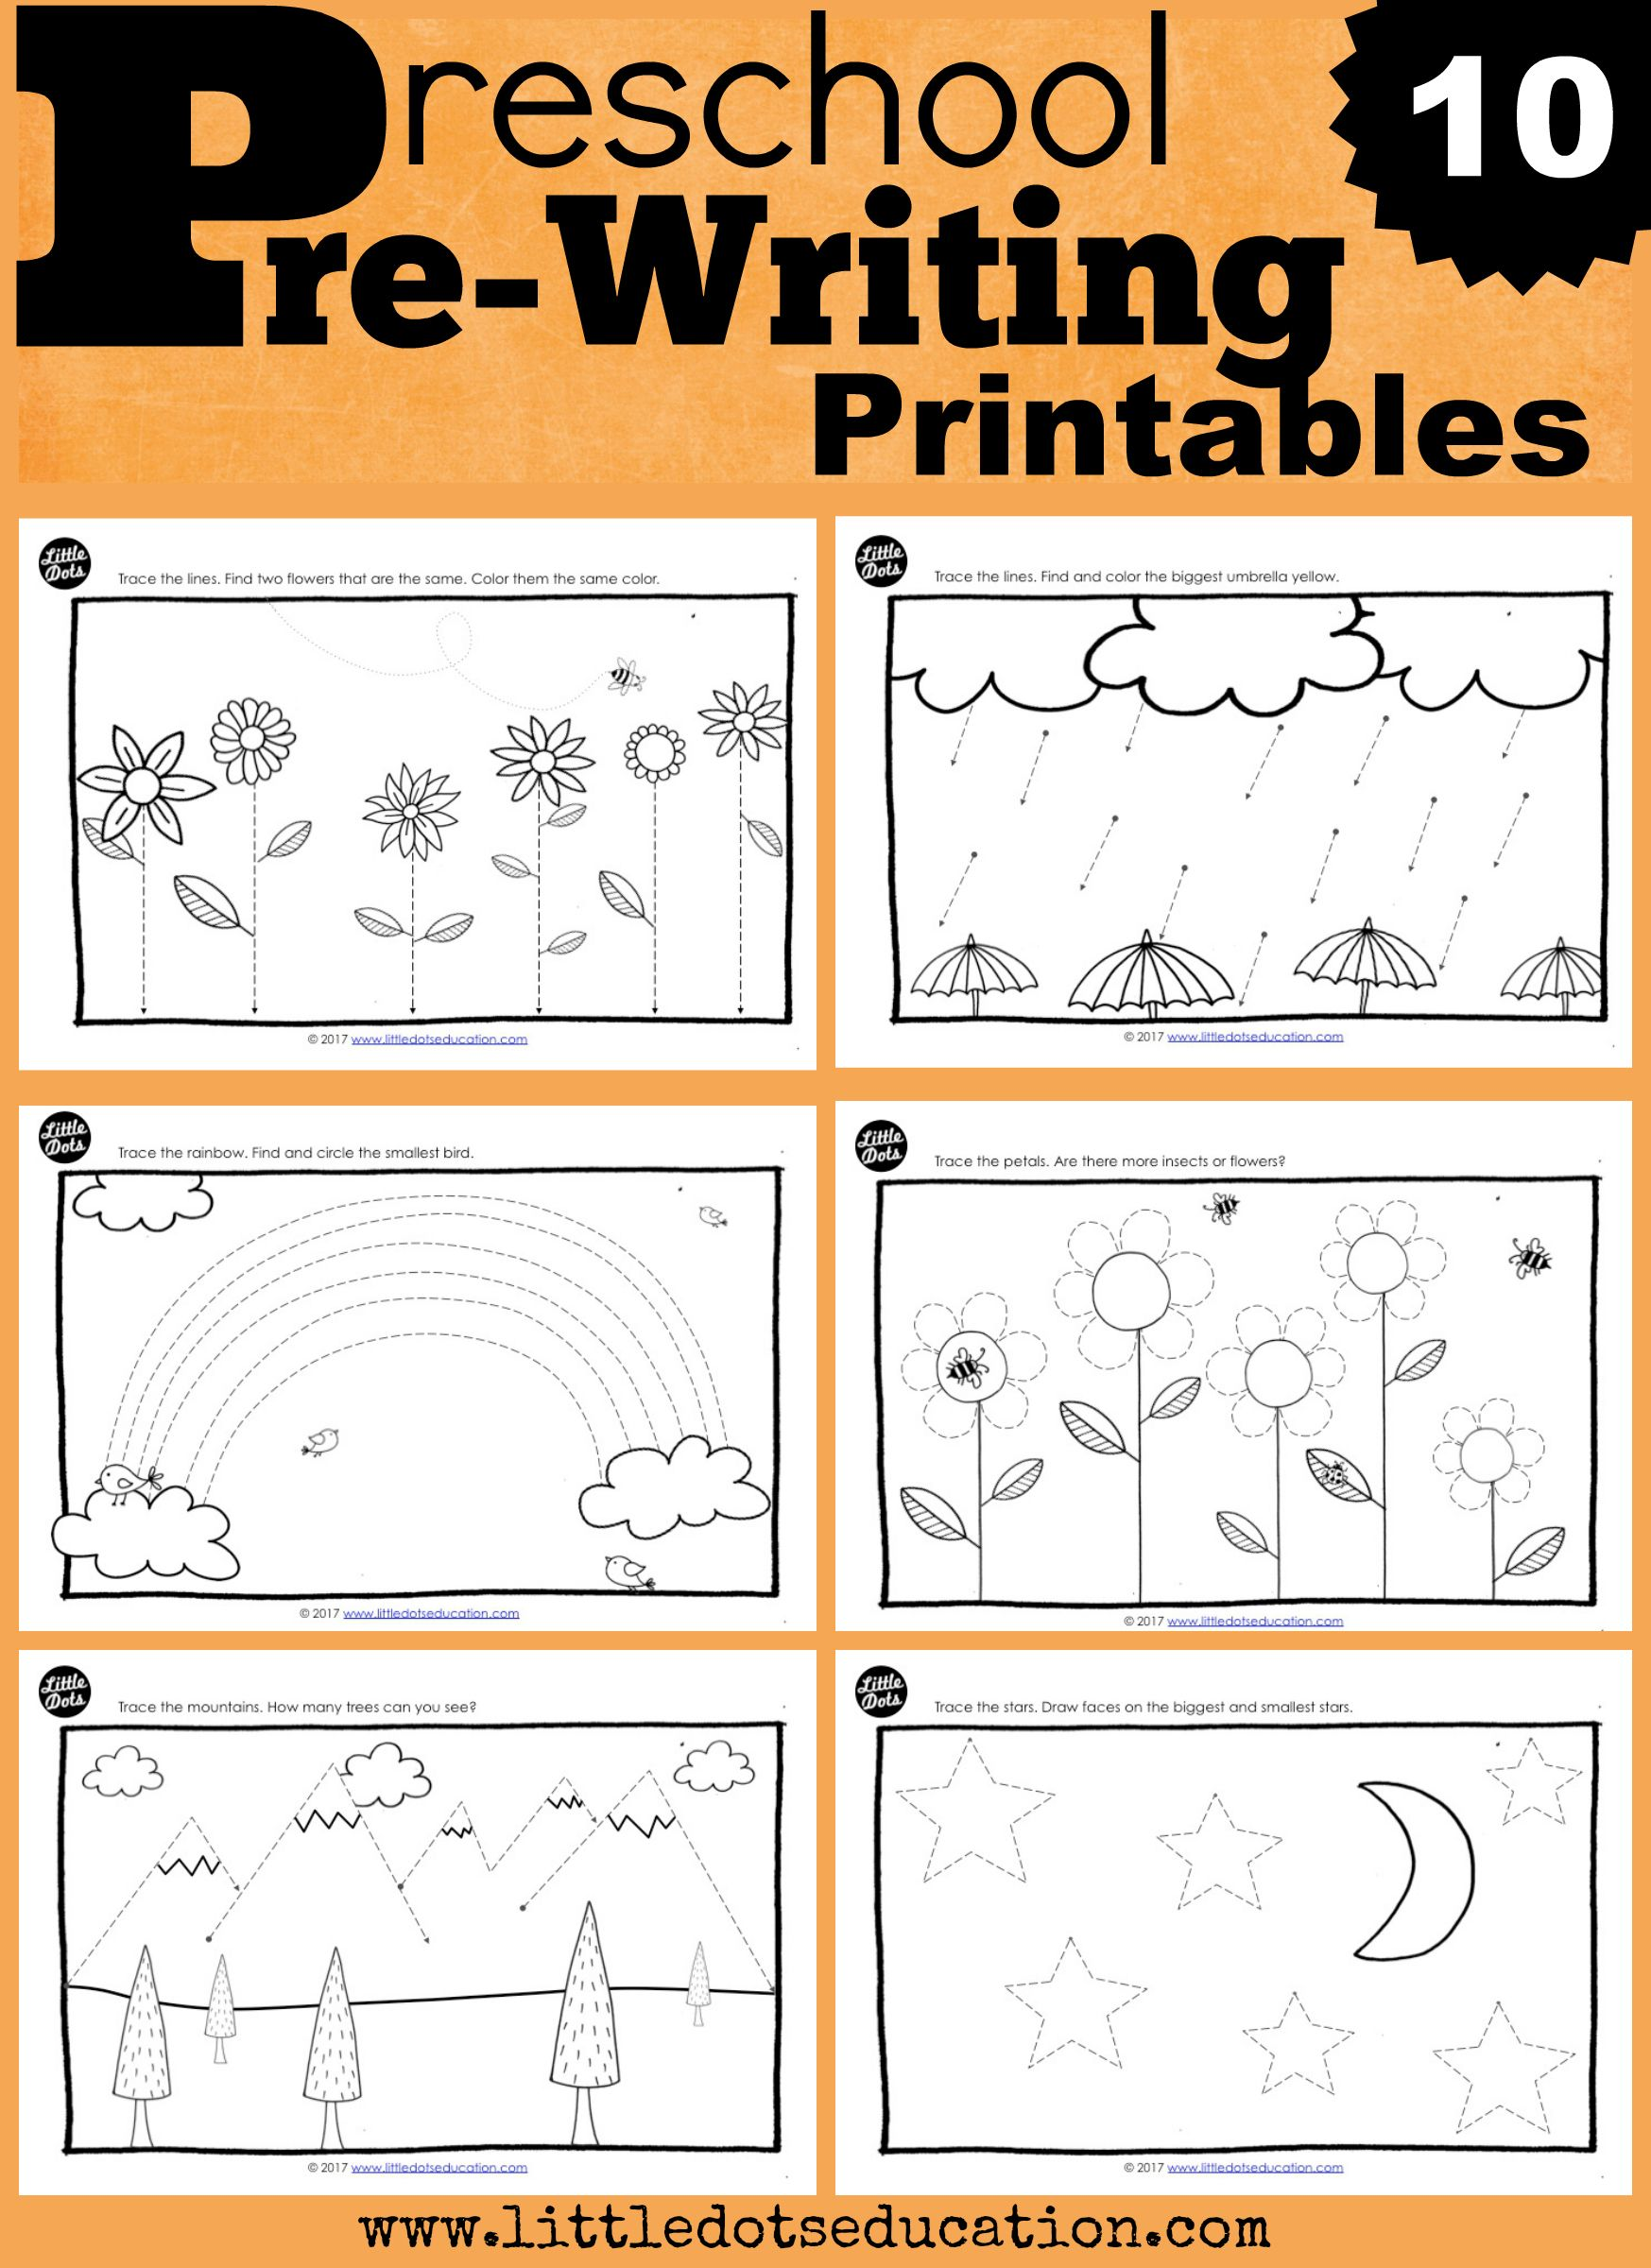 Download ten adorable pre-writing and tracing printables for preschool, pre- k or